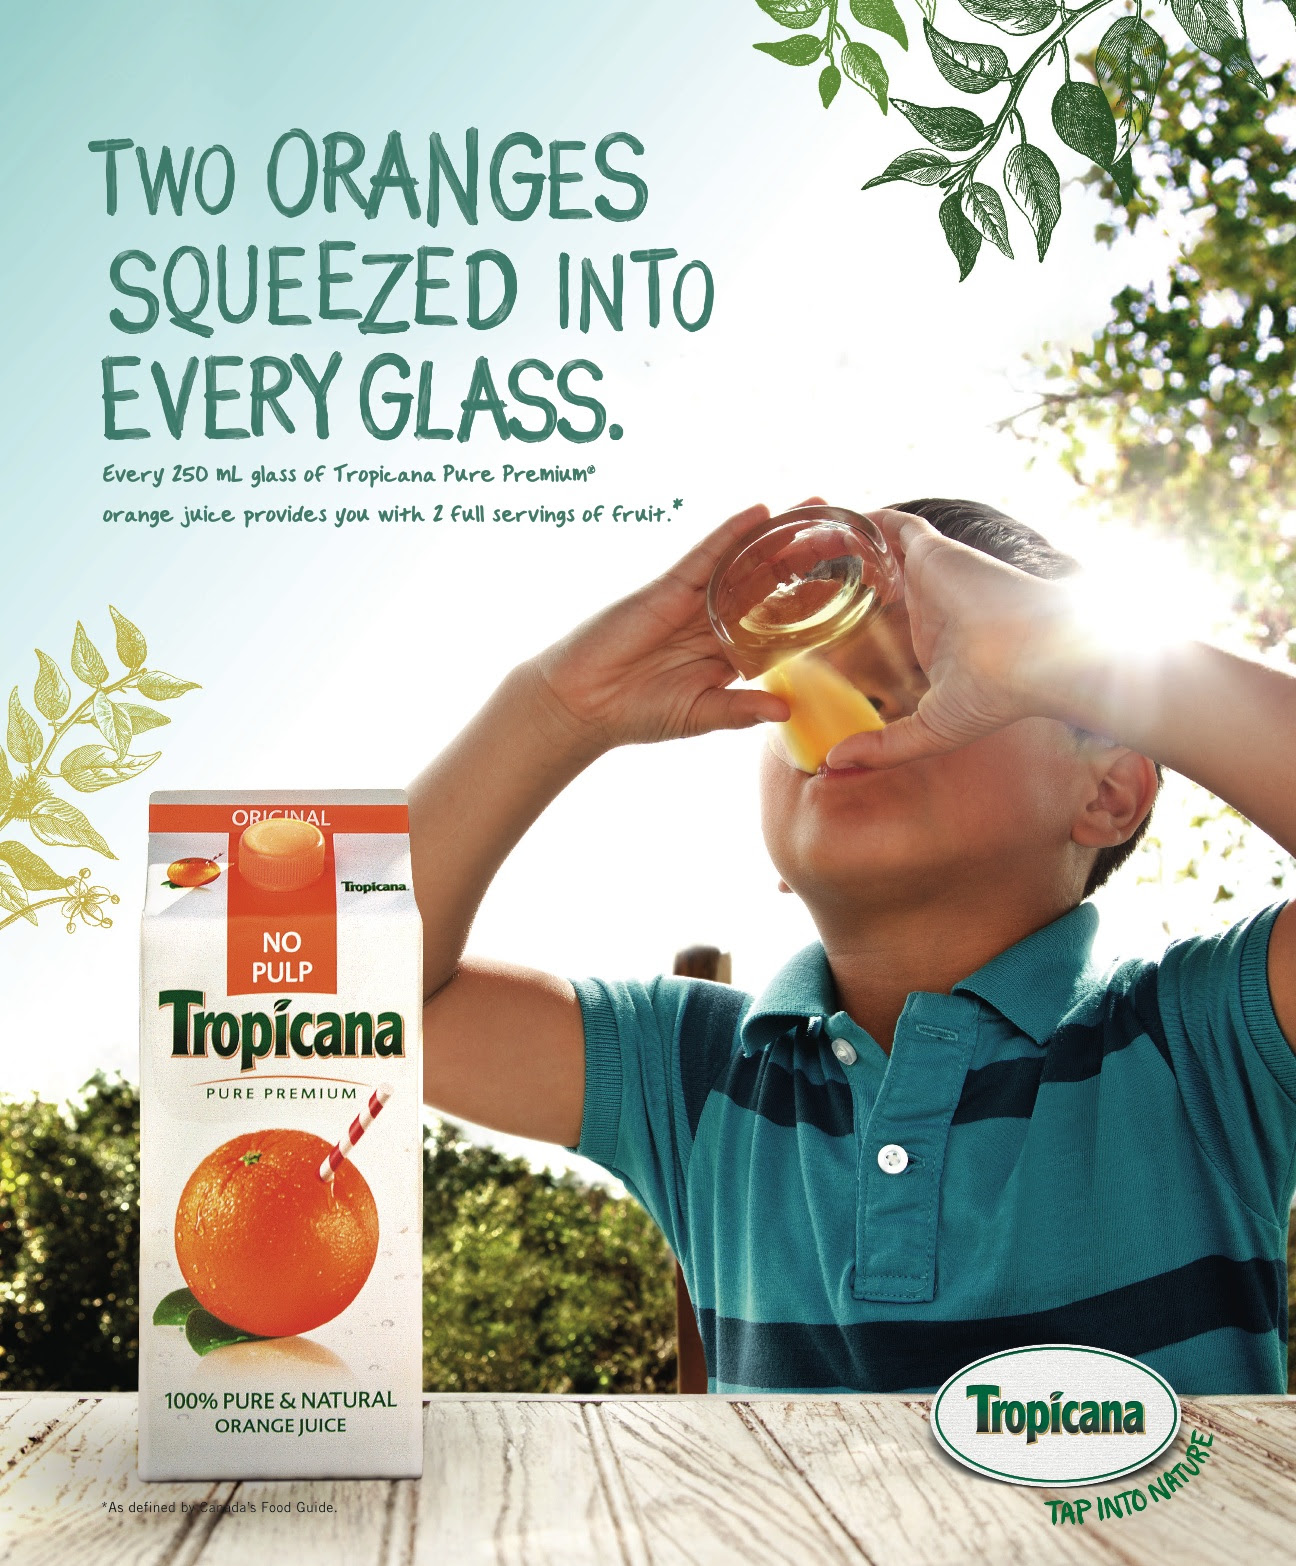 Growers' stories add human touch to new Tropicana campaign